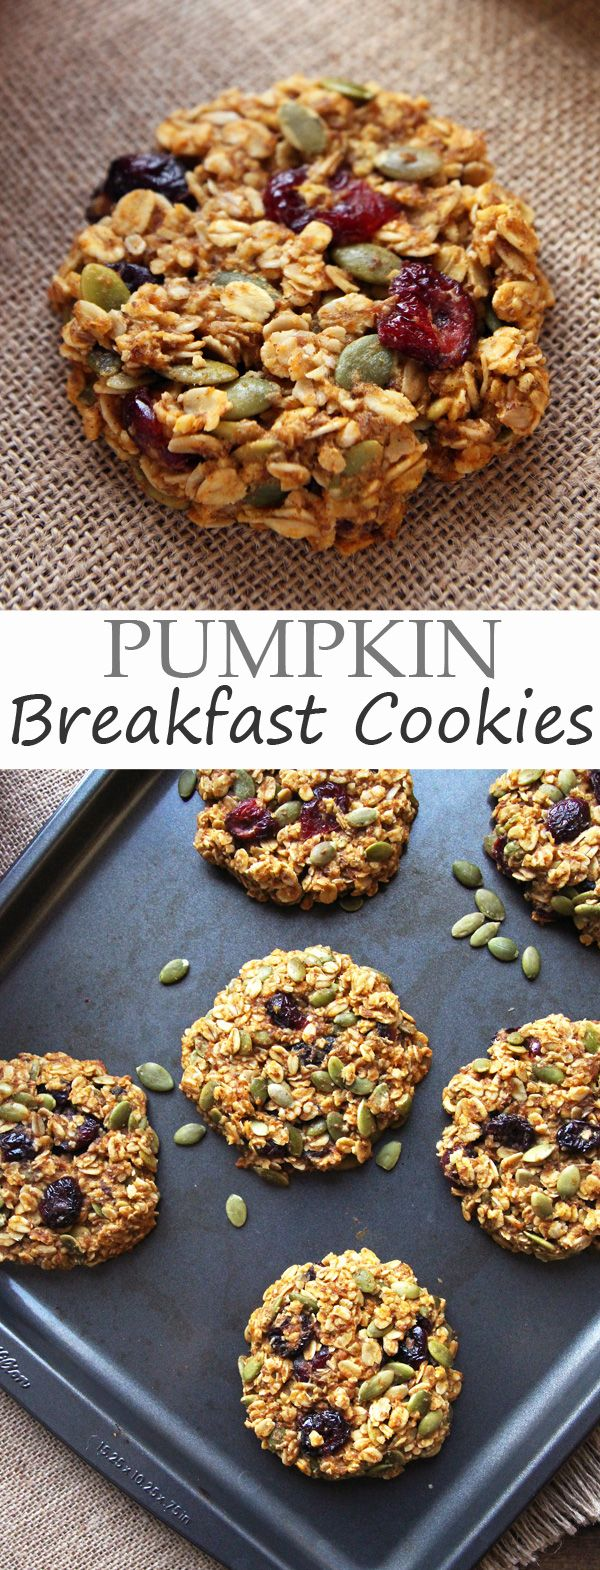 Healthy Pumpkin Breakfast Cookies are perfect for busy mornings. Made with oats, pumpkin puree, pepitas cranberries and Spectrum Naturals® coconut oil you can have a nutritious breakfast on the go. AD #SpectrumSundays